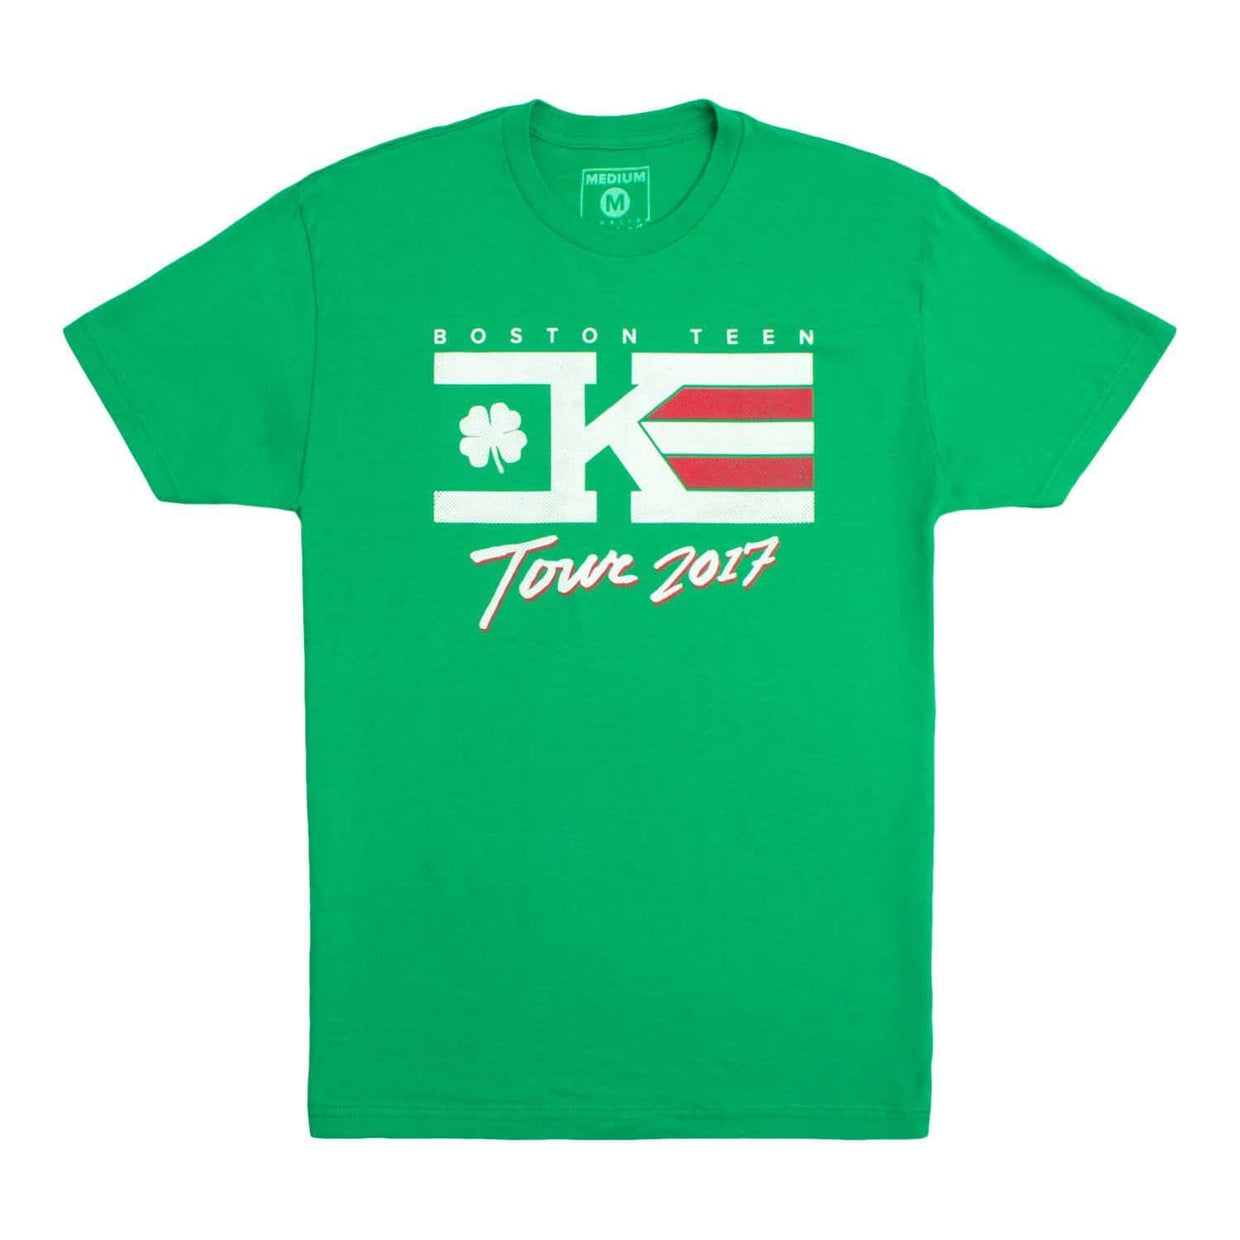 Limited Edition 'Boston Teen' Tee